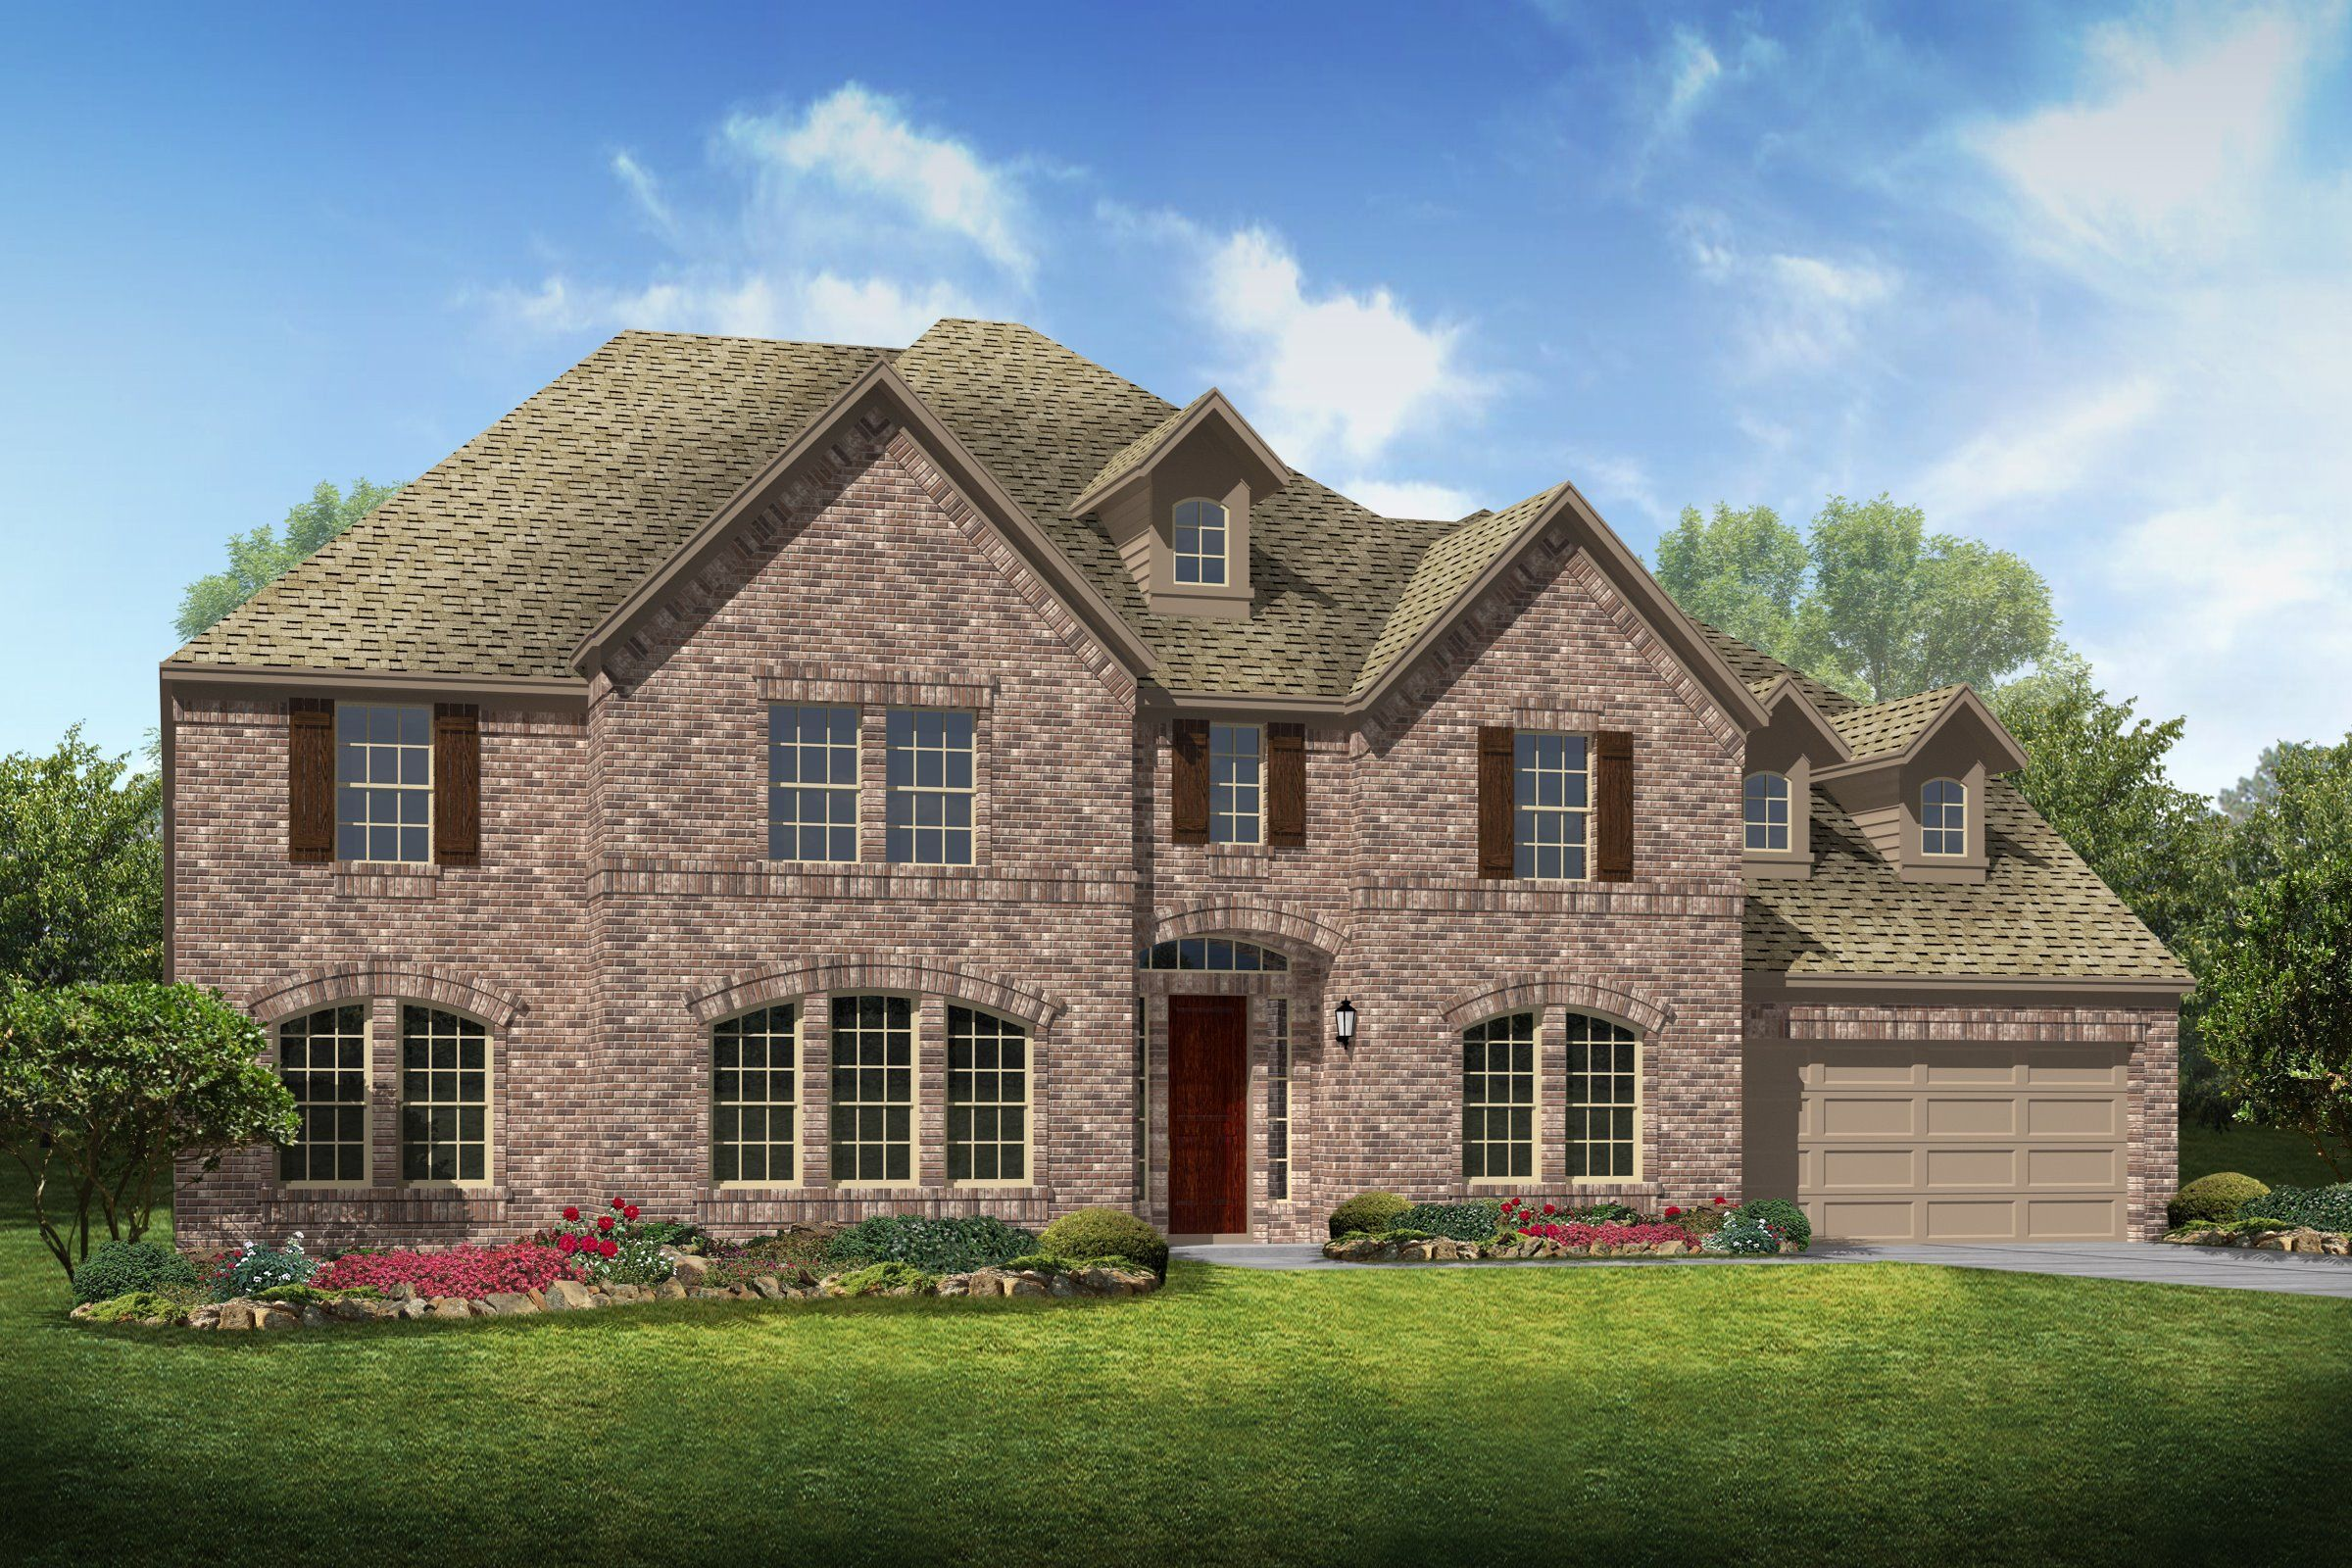 huffman real estate huffman real estate agents in tx